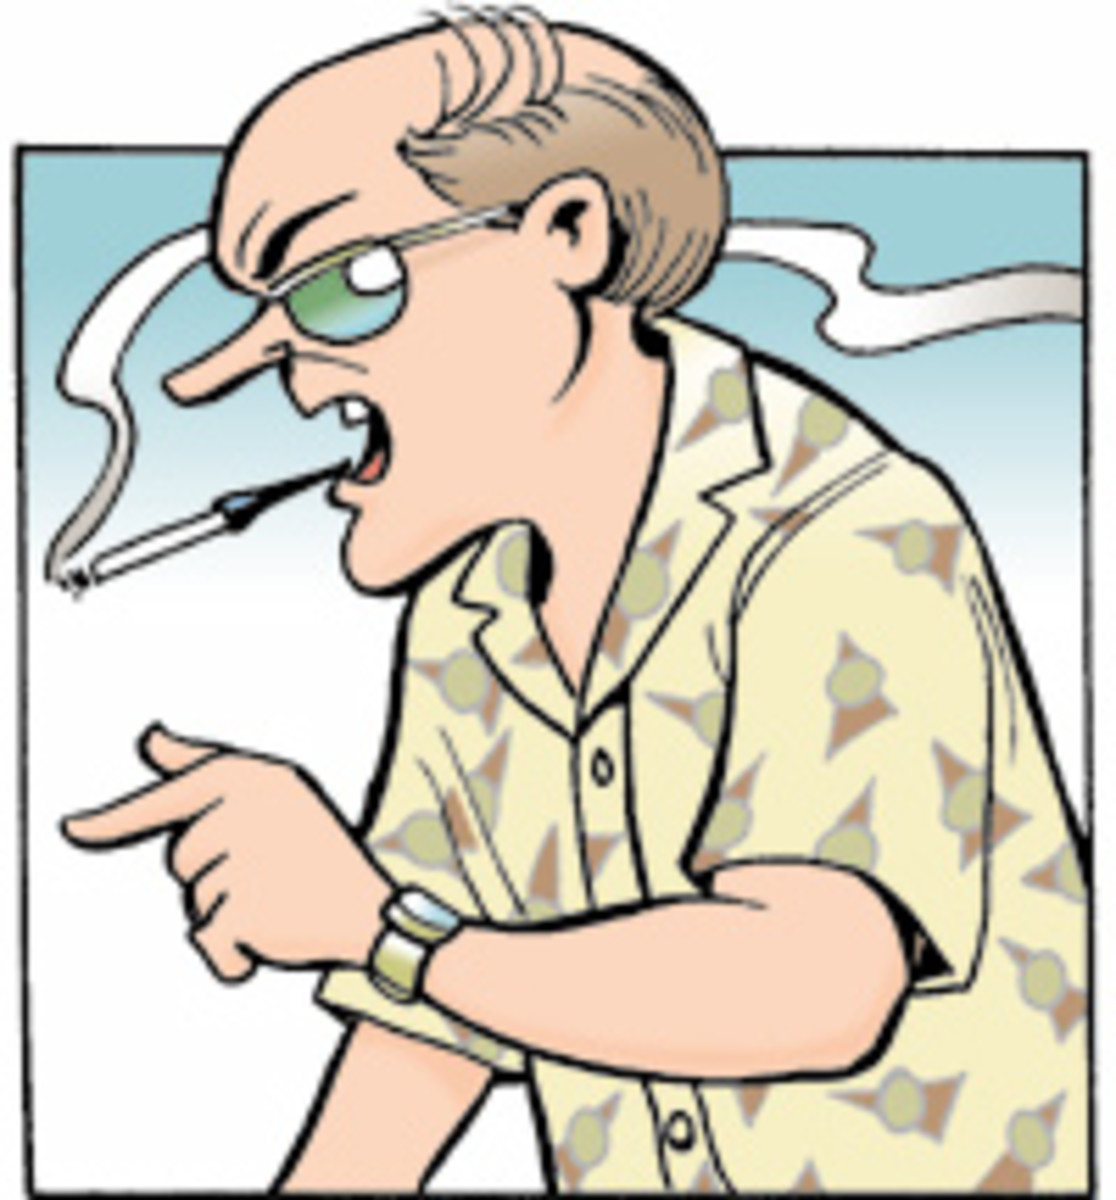 Uncle Duke from Doonesbury